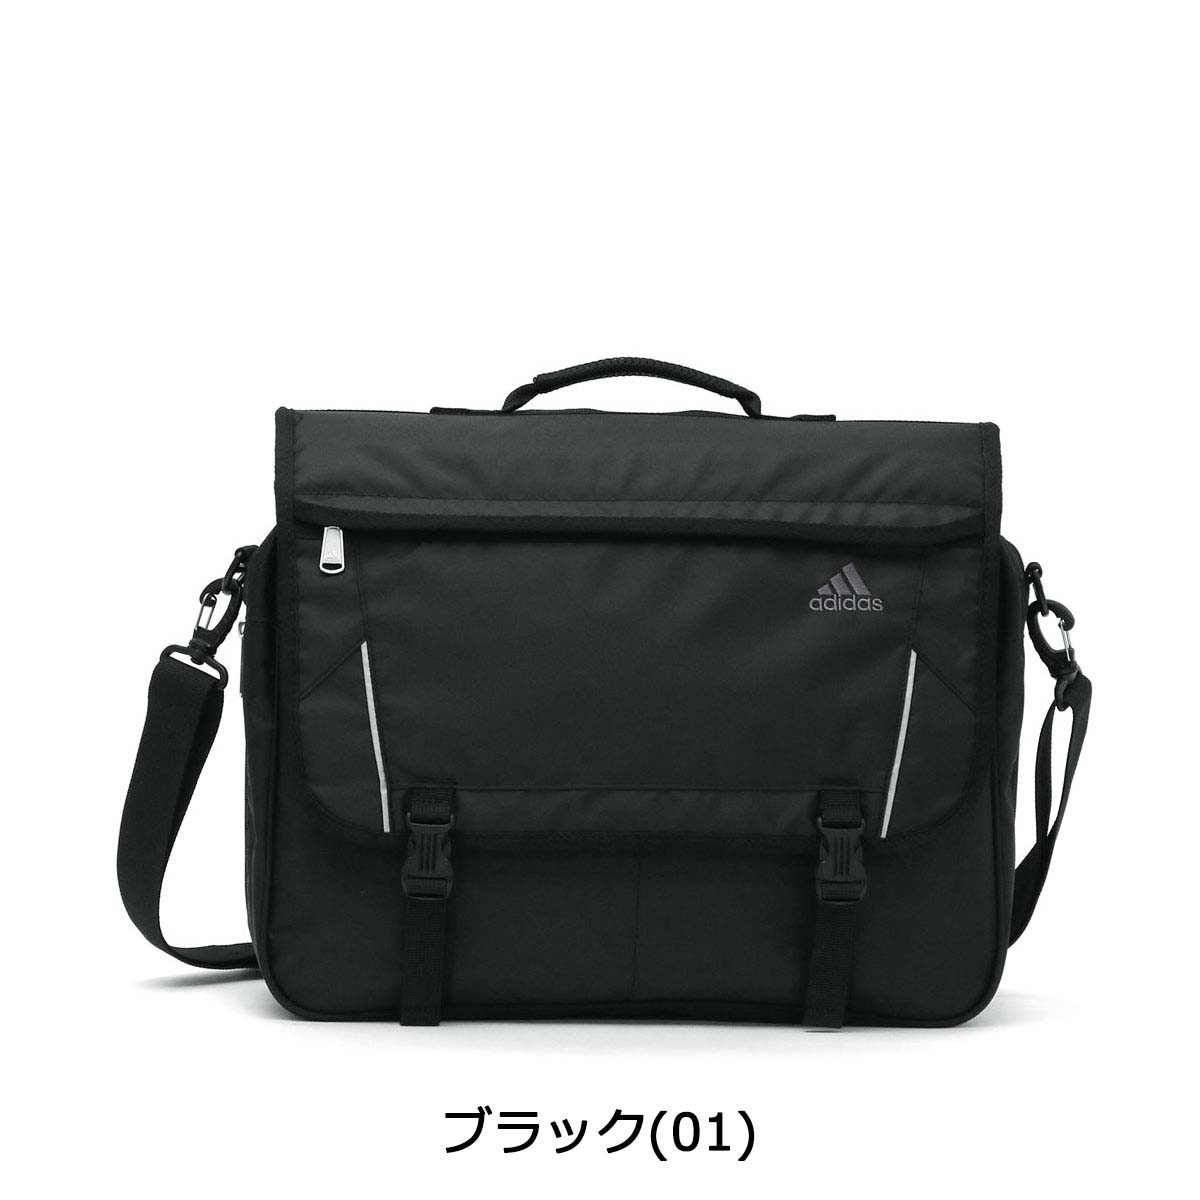 Adidas 3 Way Shoulder Bag adidas Backpack Diagonal Cliff Light School Bag  Lesson Bag B 4 Extension Double School 15 L Men s Junior High School High  School ...